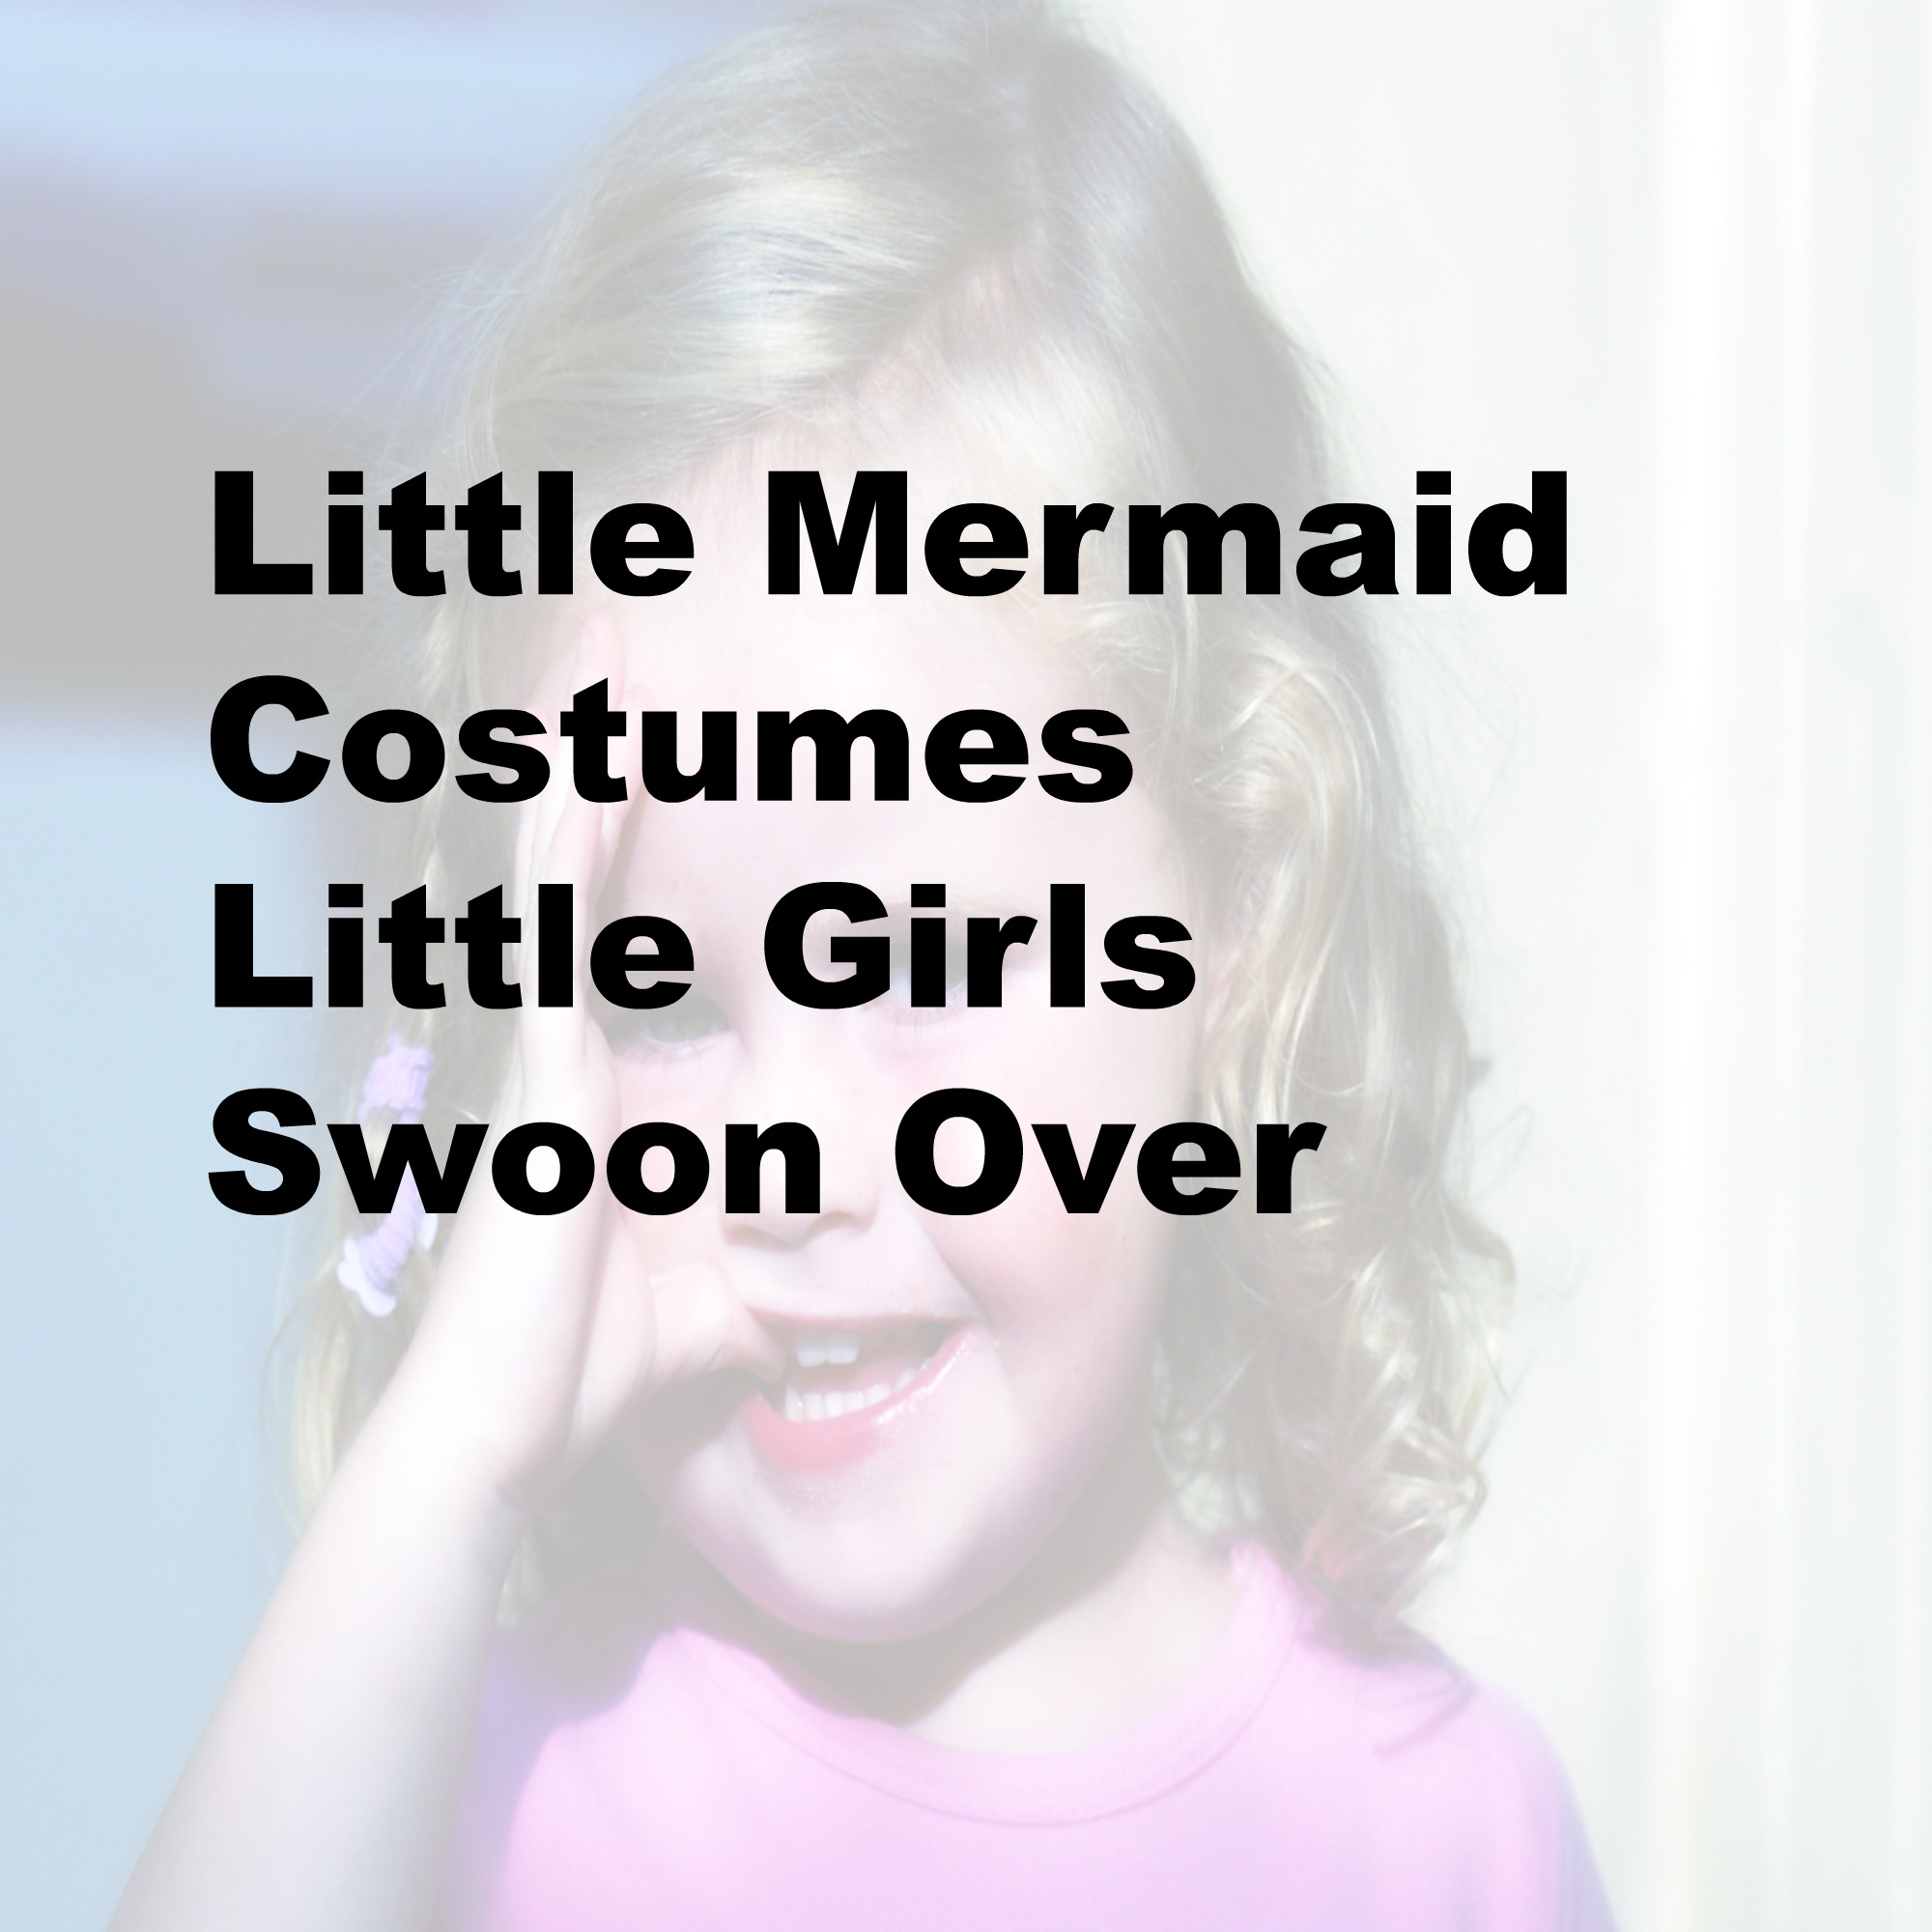 little mermaid costumes little girls